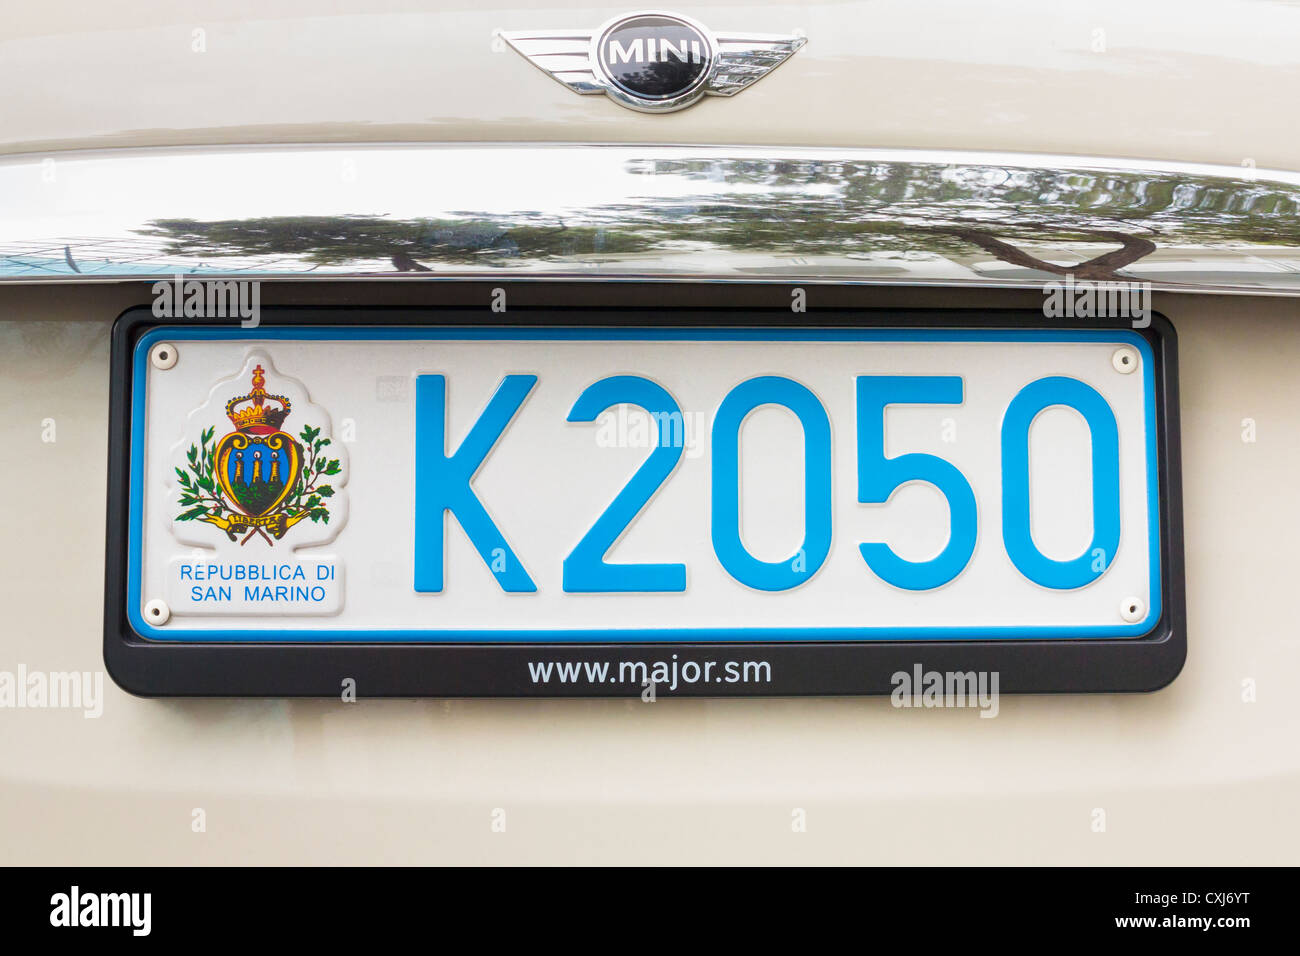 Car Number Plate Stockfotos & Car Number Plate Bilder - Alamy